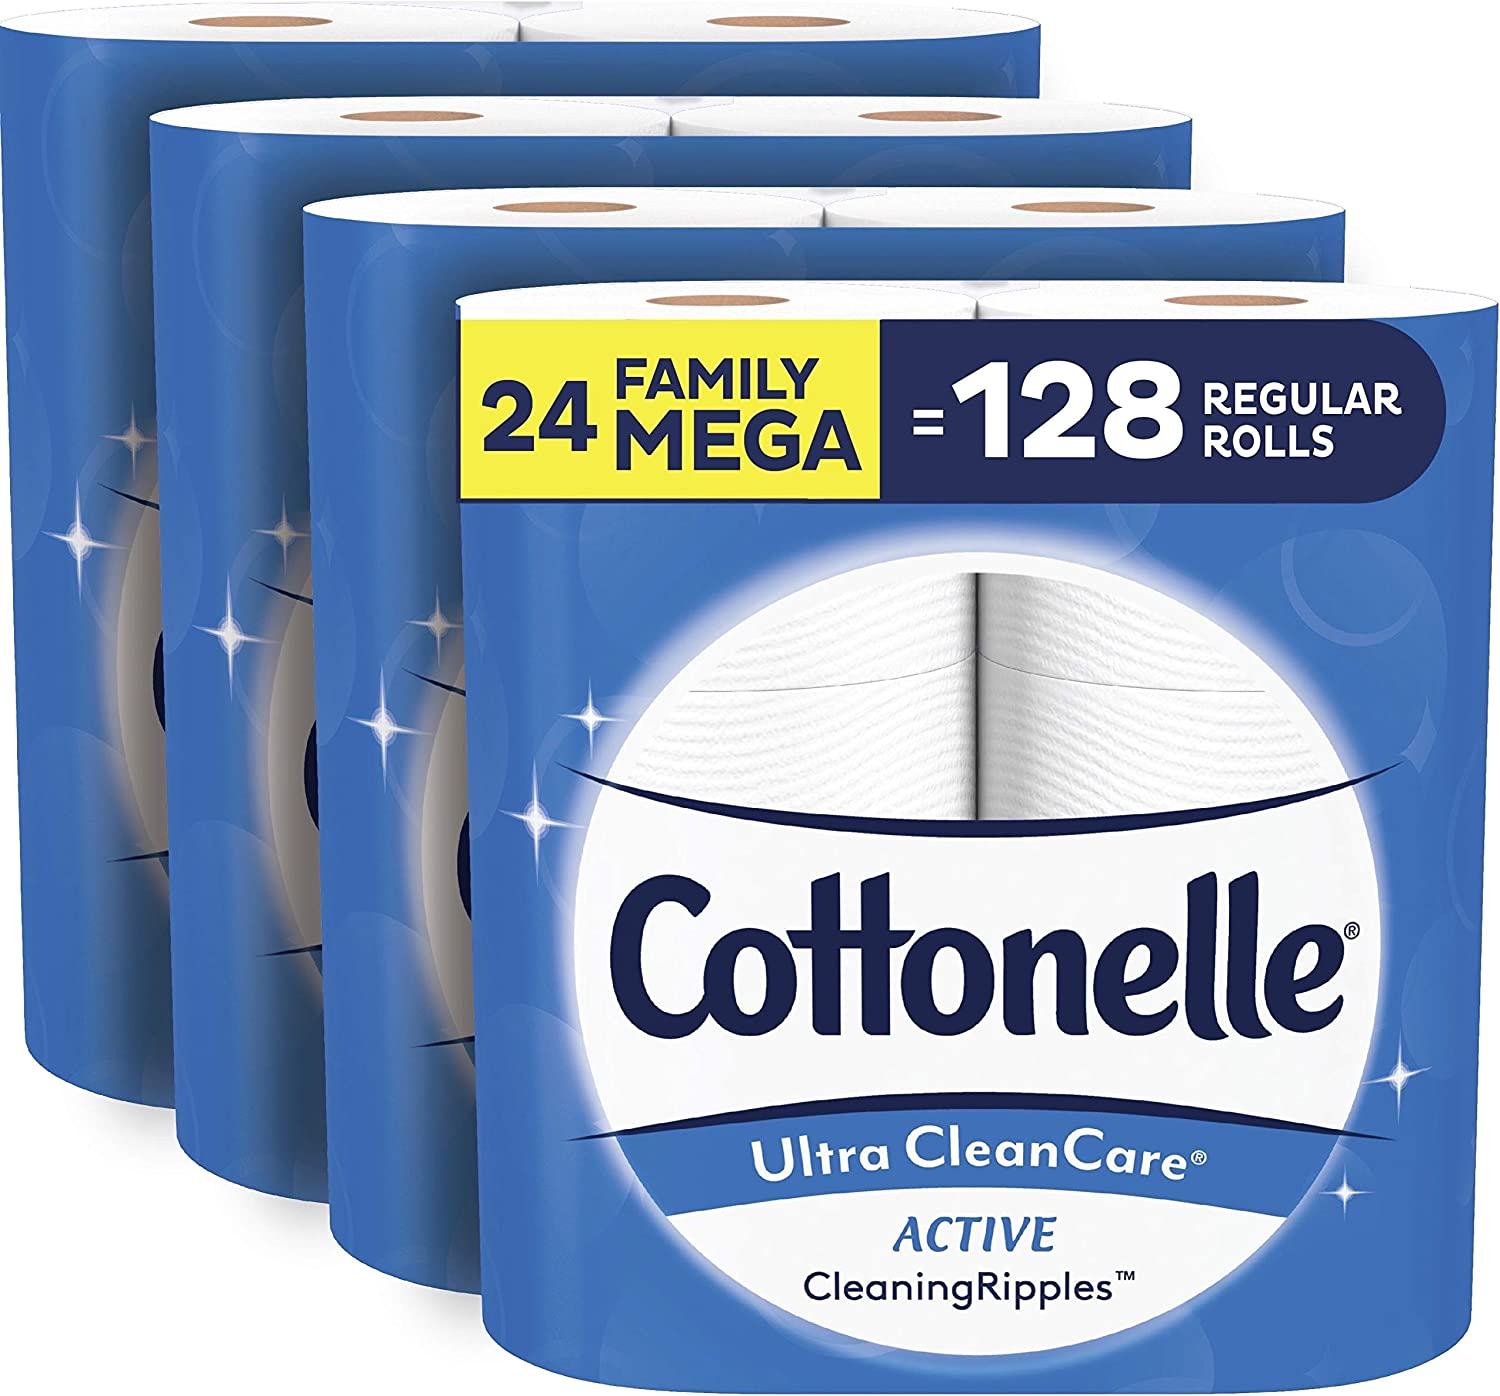 Cottonelle Ultra CleanCare Soft Toilet Paper with Active CleaningRipples, 24 Family Mega Rolls: Health & Personal Care